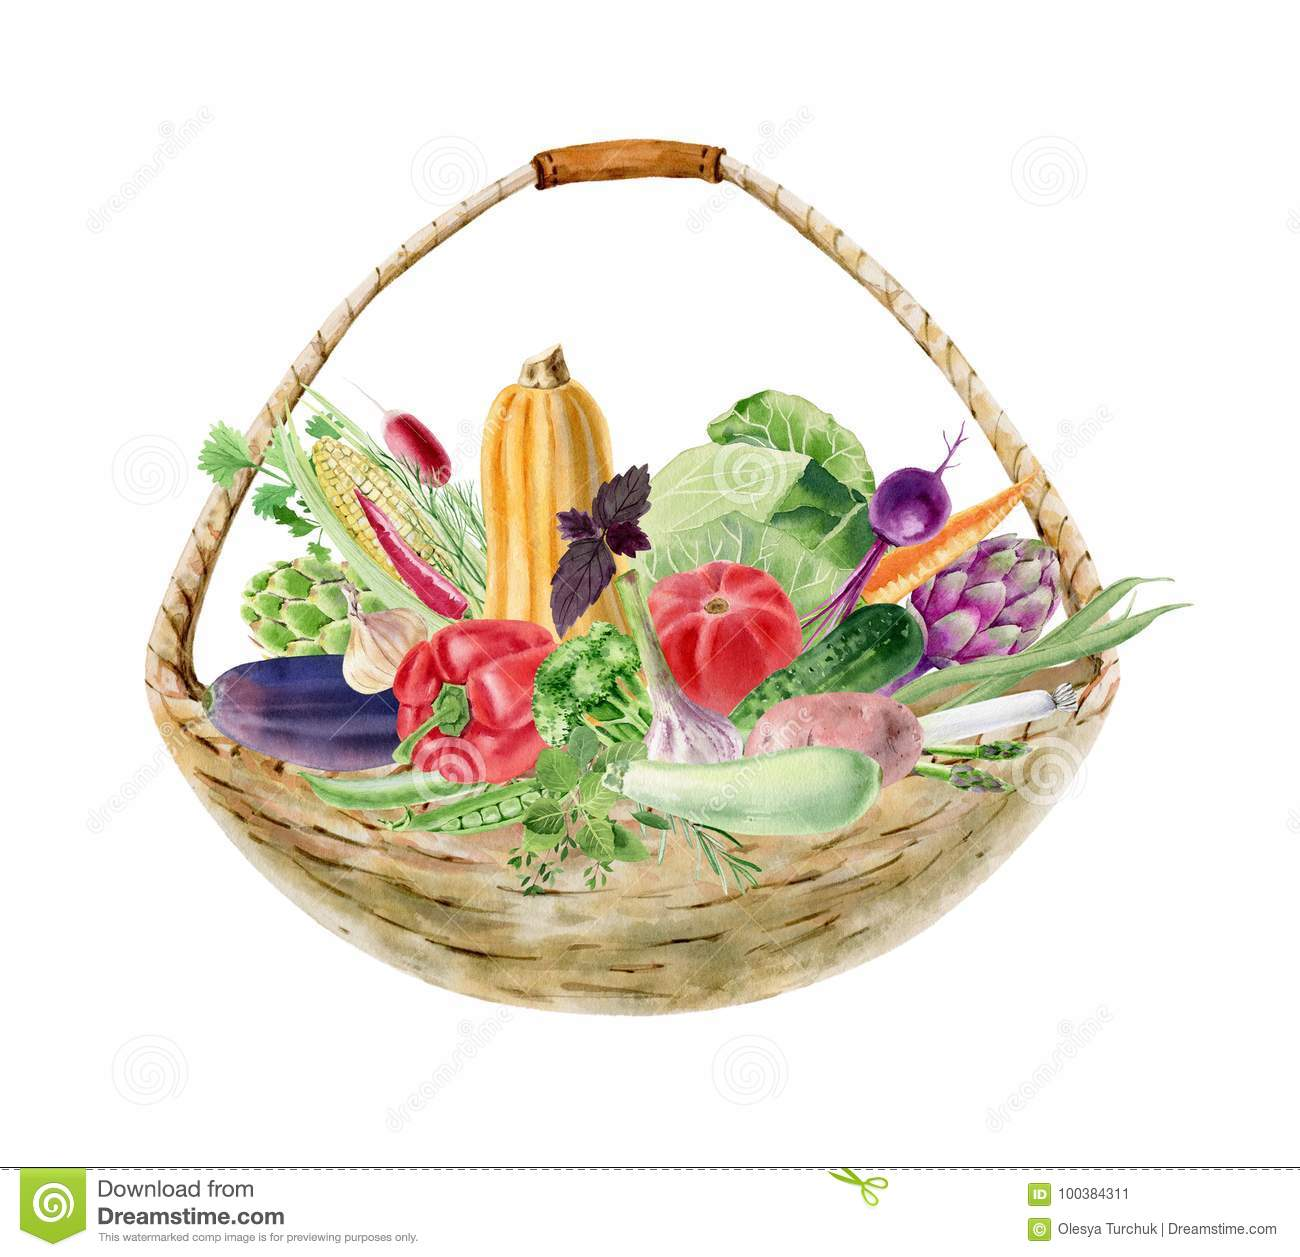 Handpainted watercolor clipart with fresh vegetables in basket